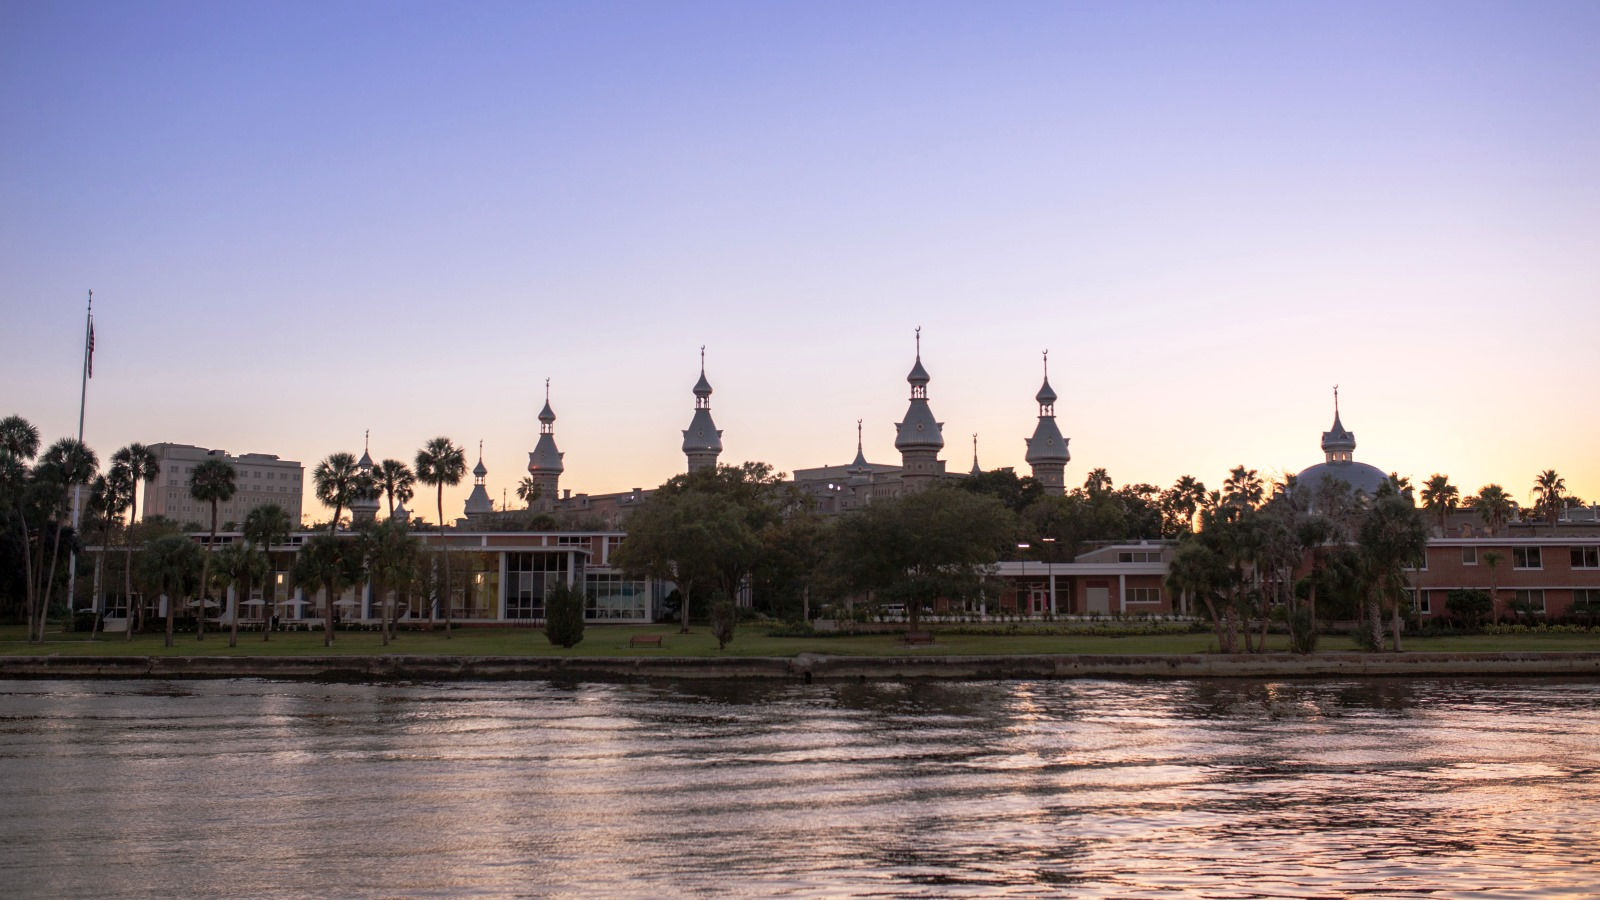 The Westin Tampa Waterside - The University of Tampa